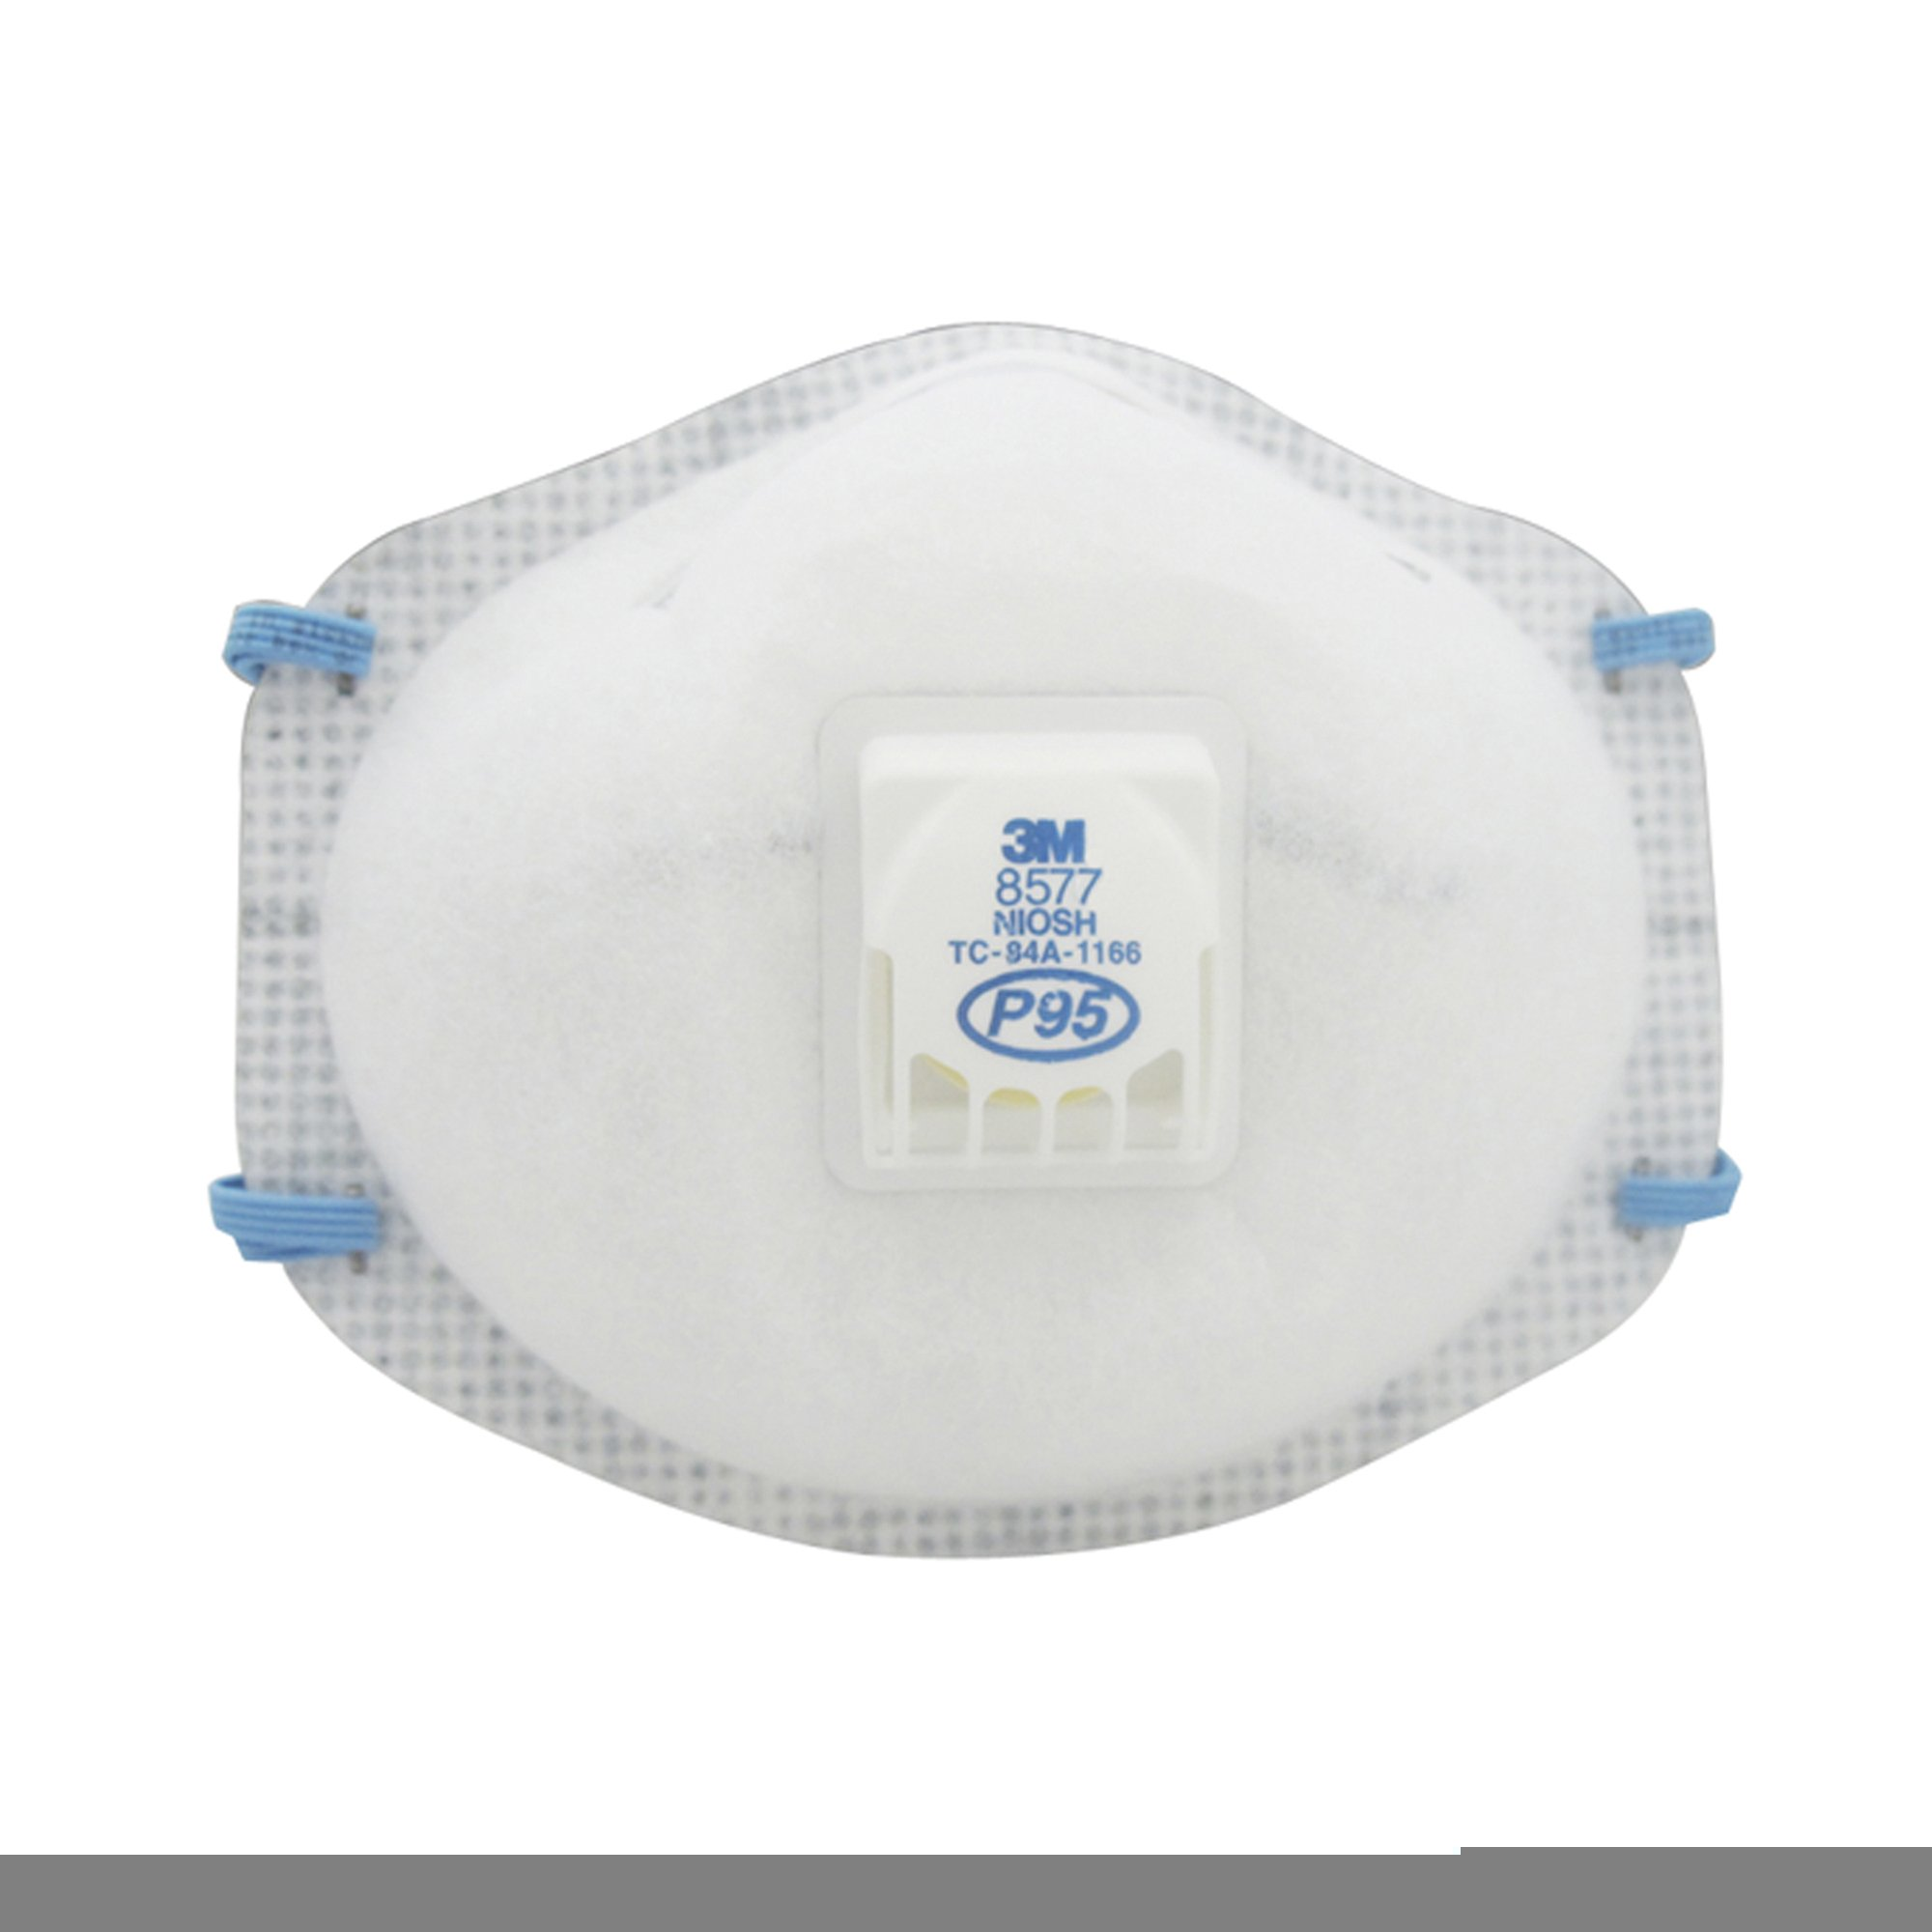 3M Standard P95 8577 Disposable Particulate Respirator With Cool Flow Exhalation Valve And Adjustable M-Nose Clip - Meets NIOSH And OSHA Standards (10 Packs)